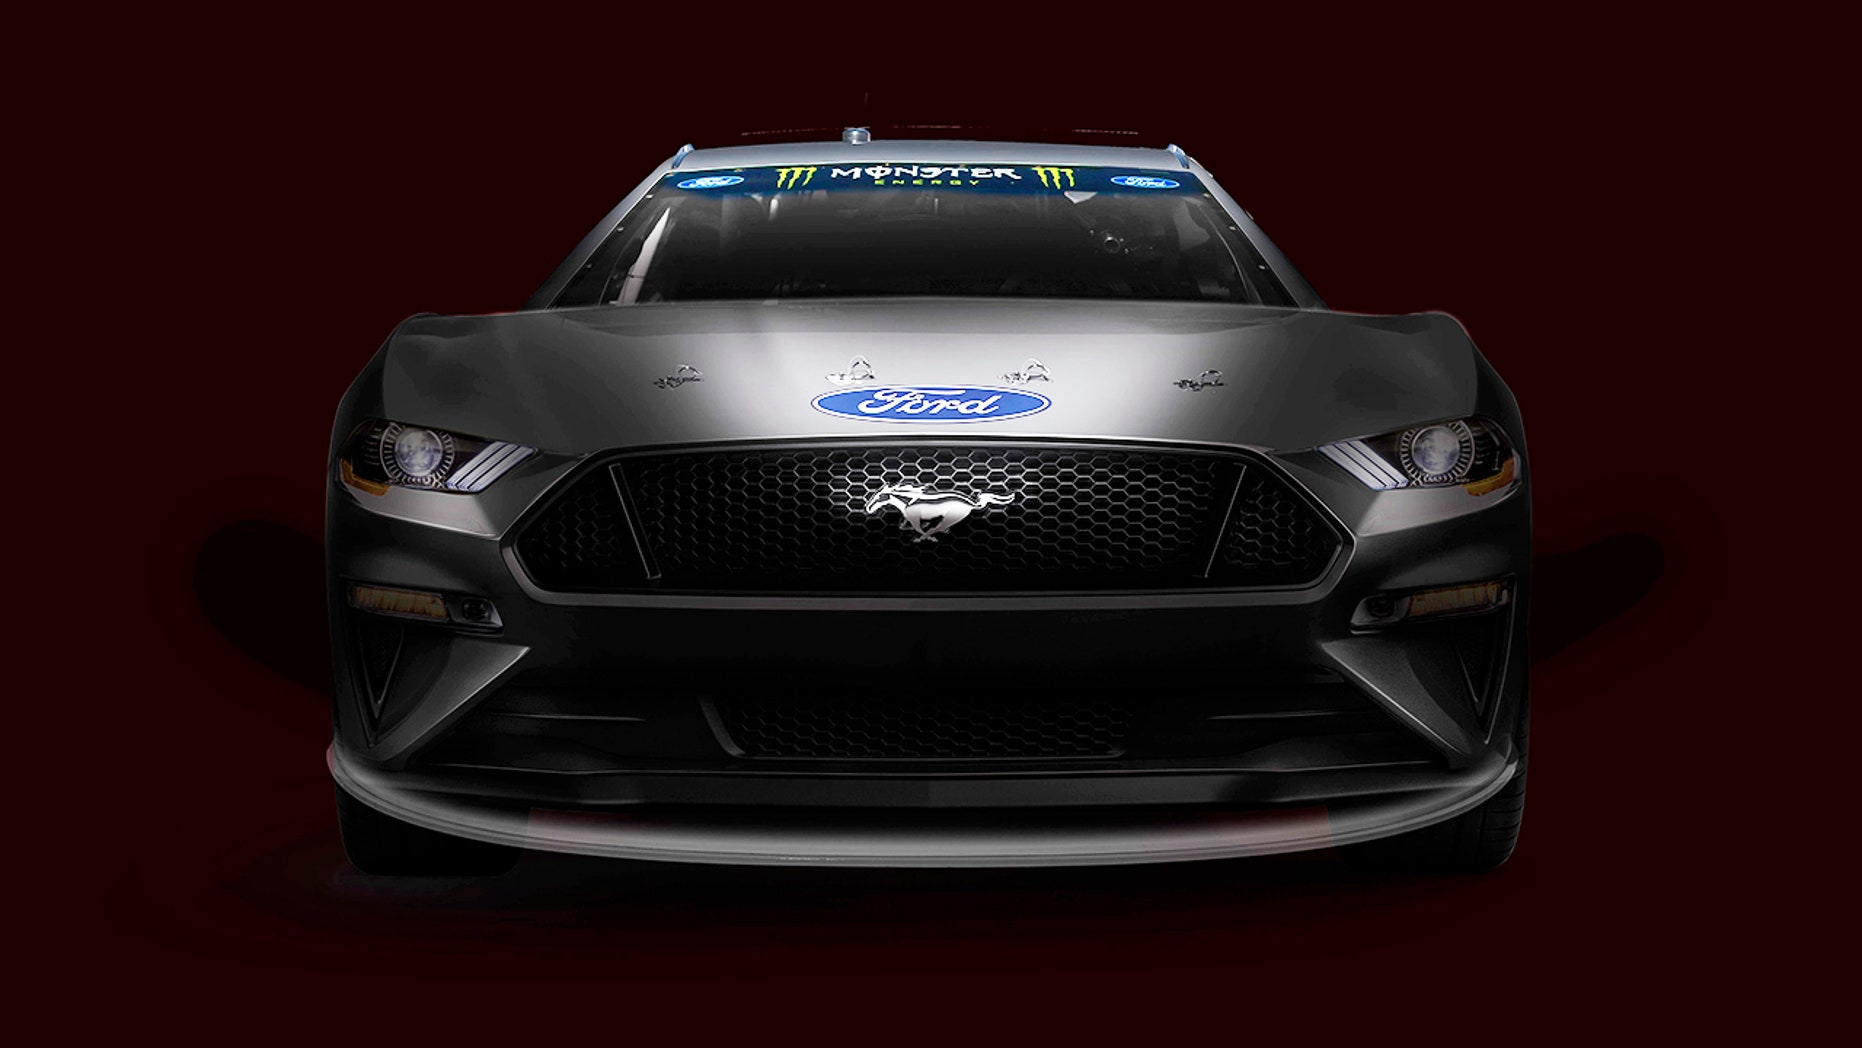 Building off its popularity ford also is announcing mustang is coming to the nascar monster